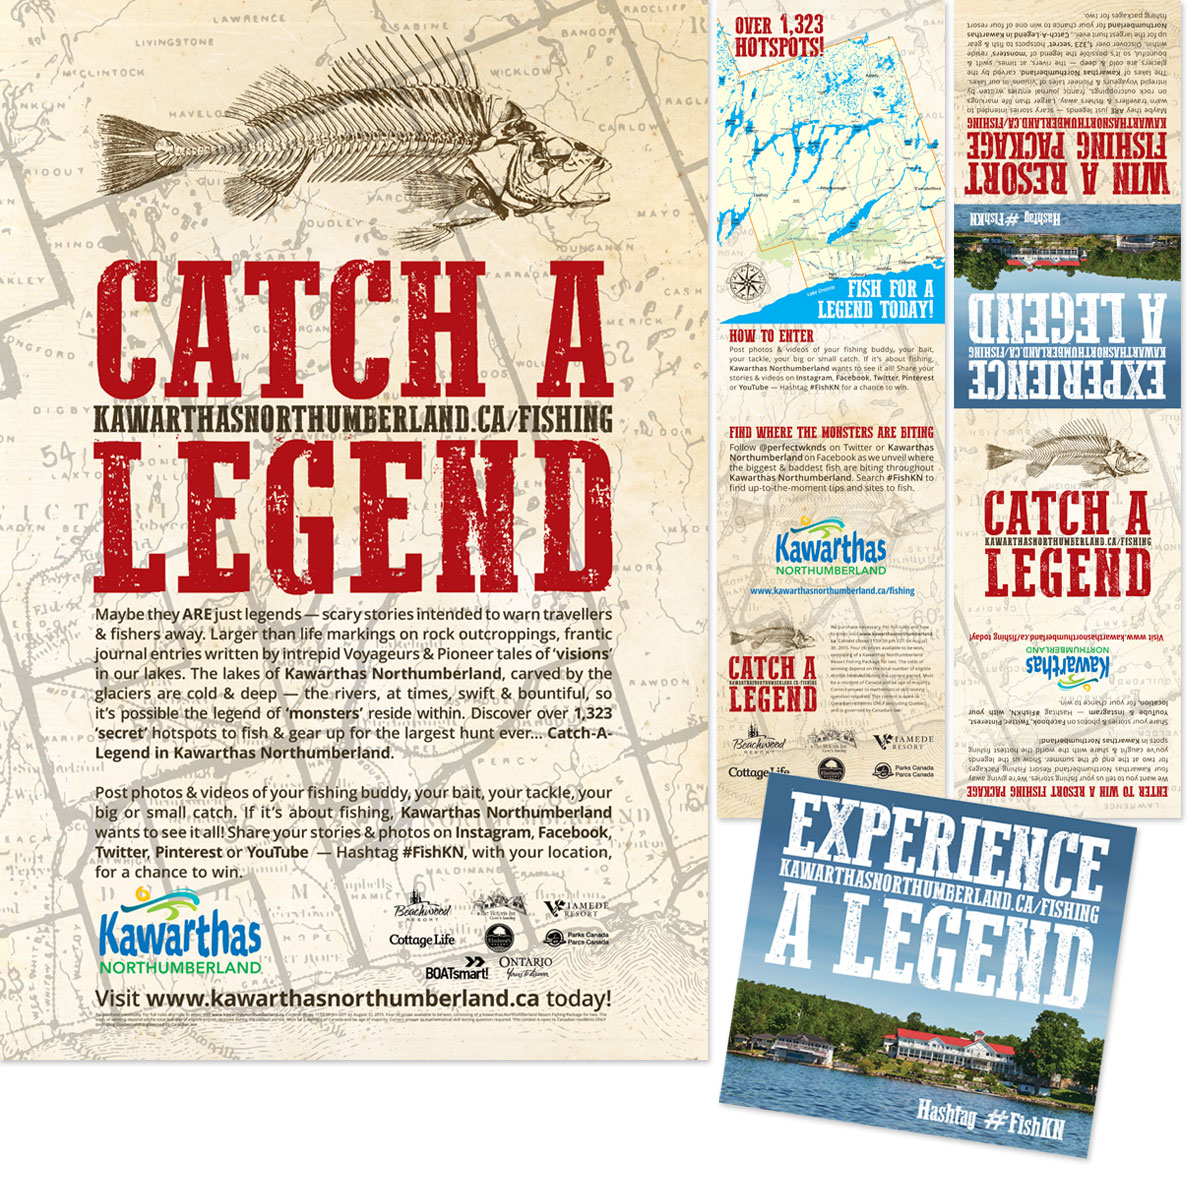 Kawarthas Northumberland - Catch A Legend - Print